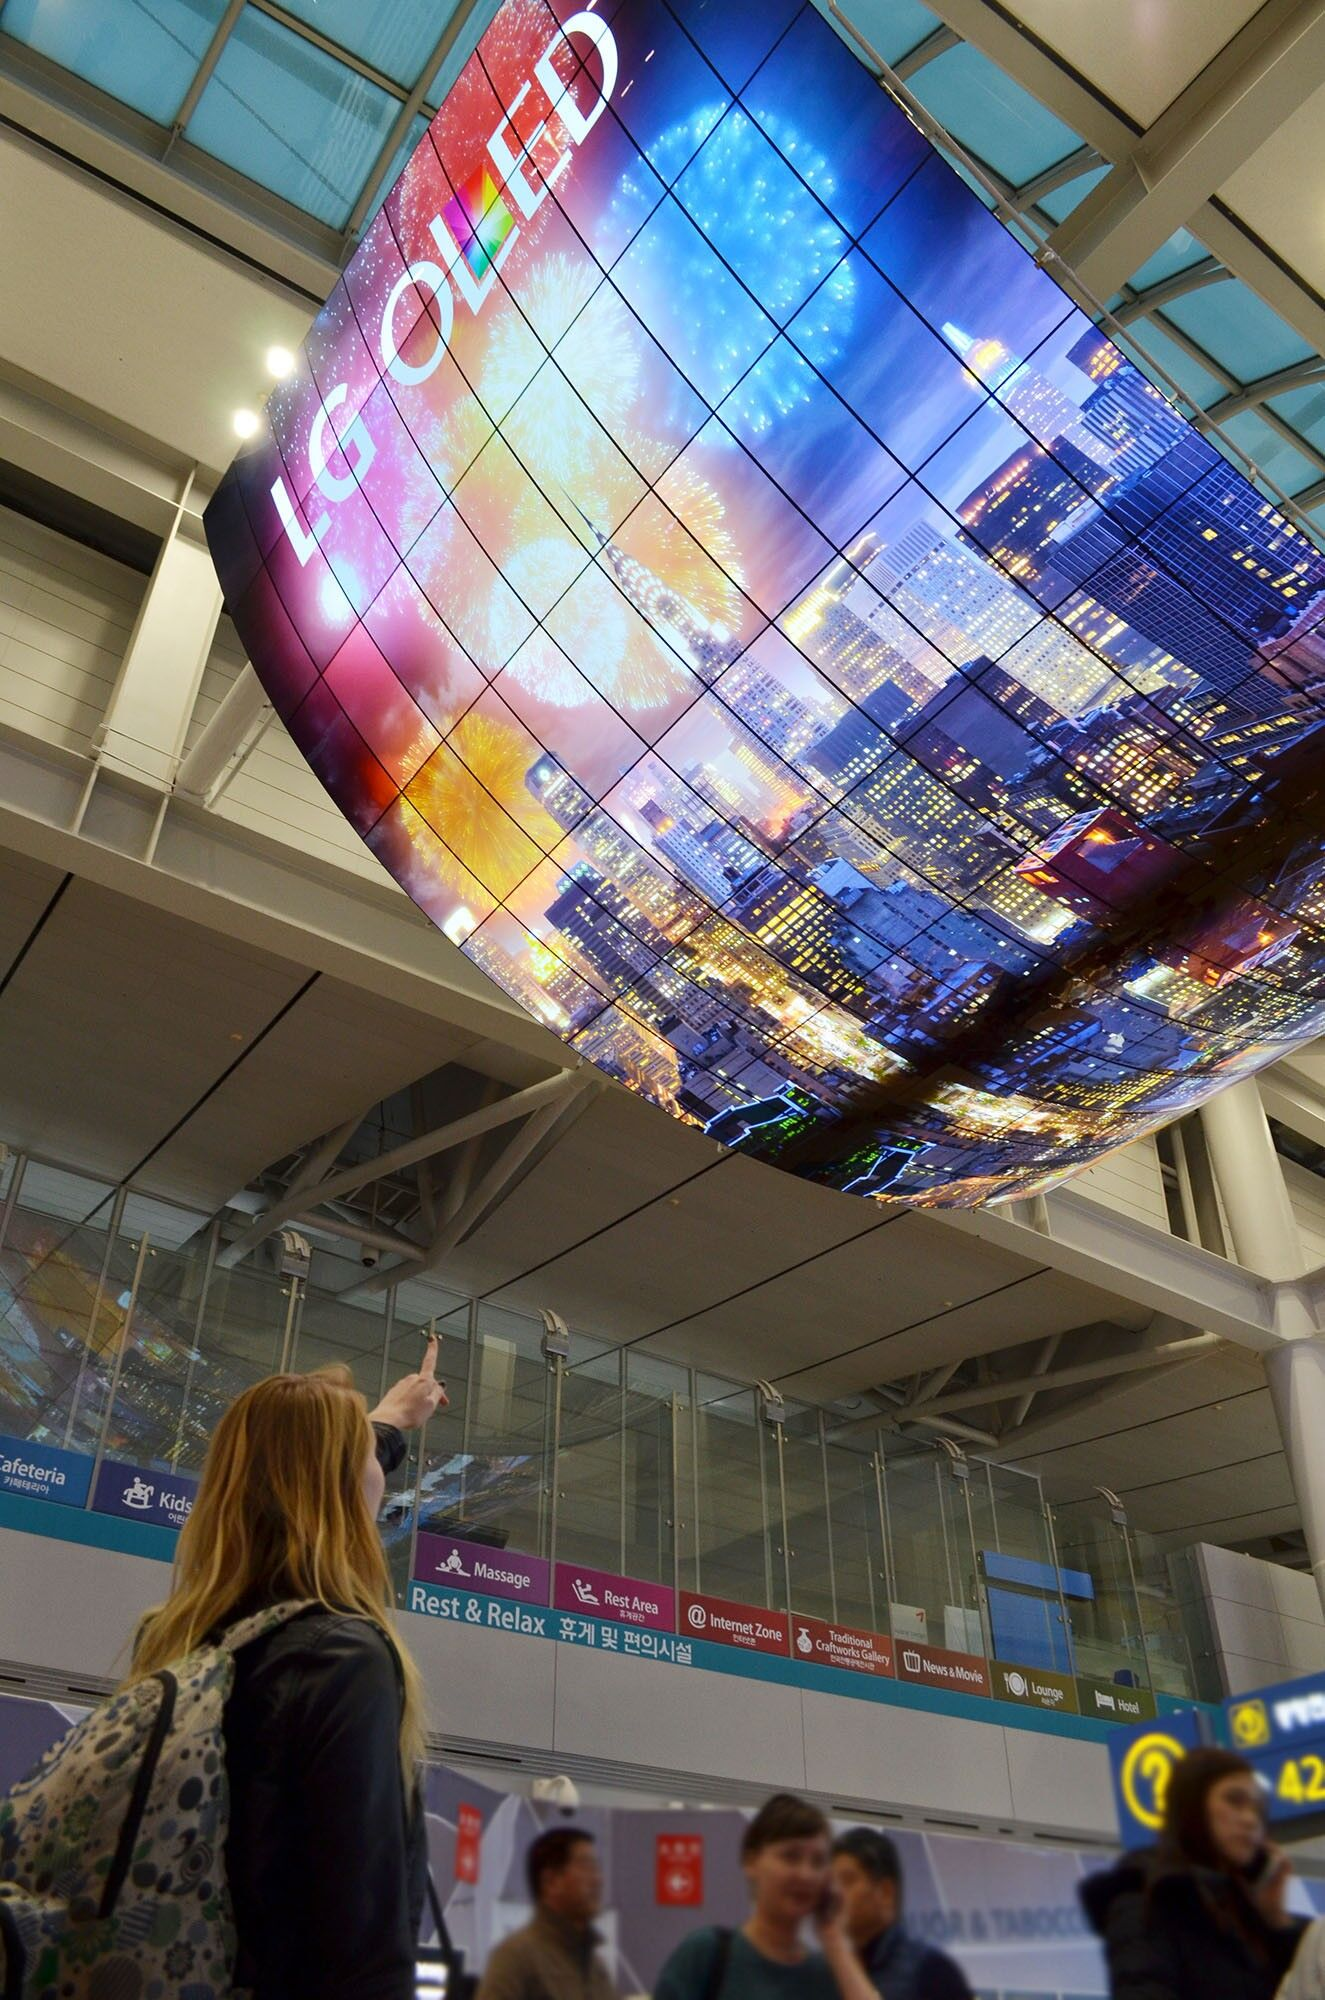 LG shows off their big OLED display at Incheon International Airport 22